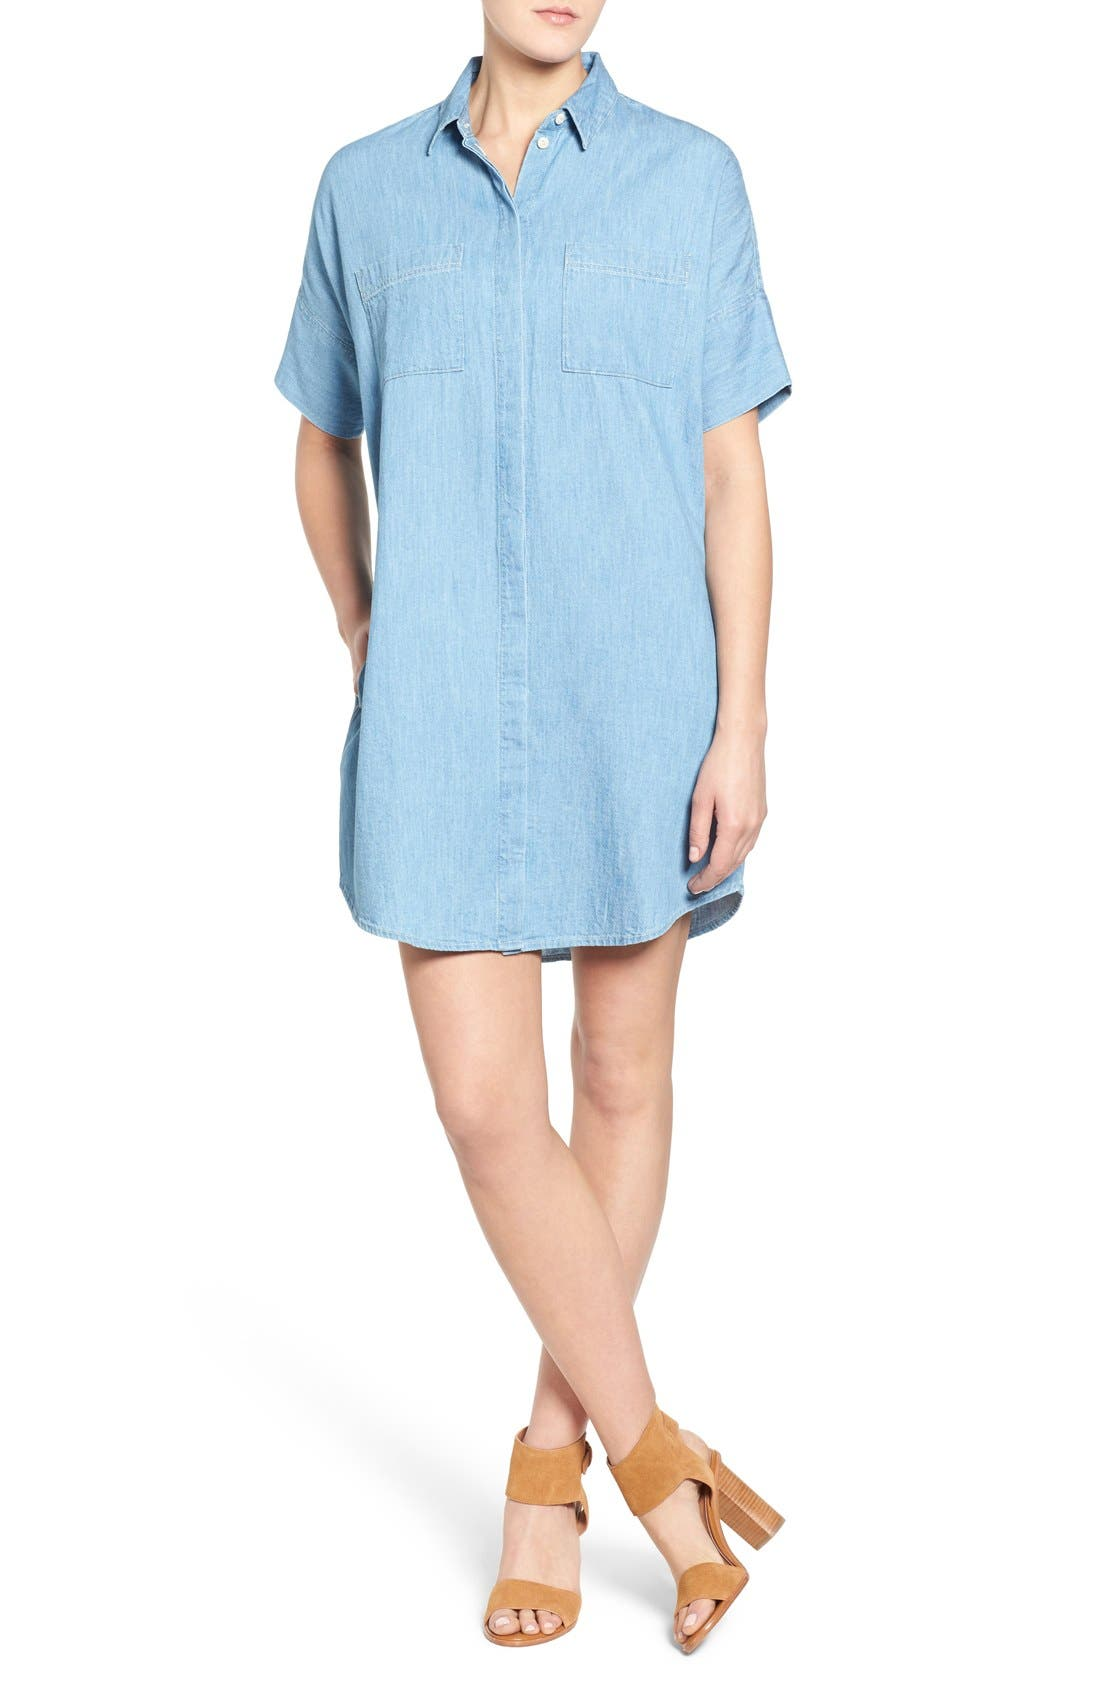 Main Image - Madewell 'Courier' Denim Shirtdress